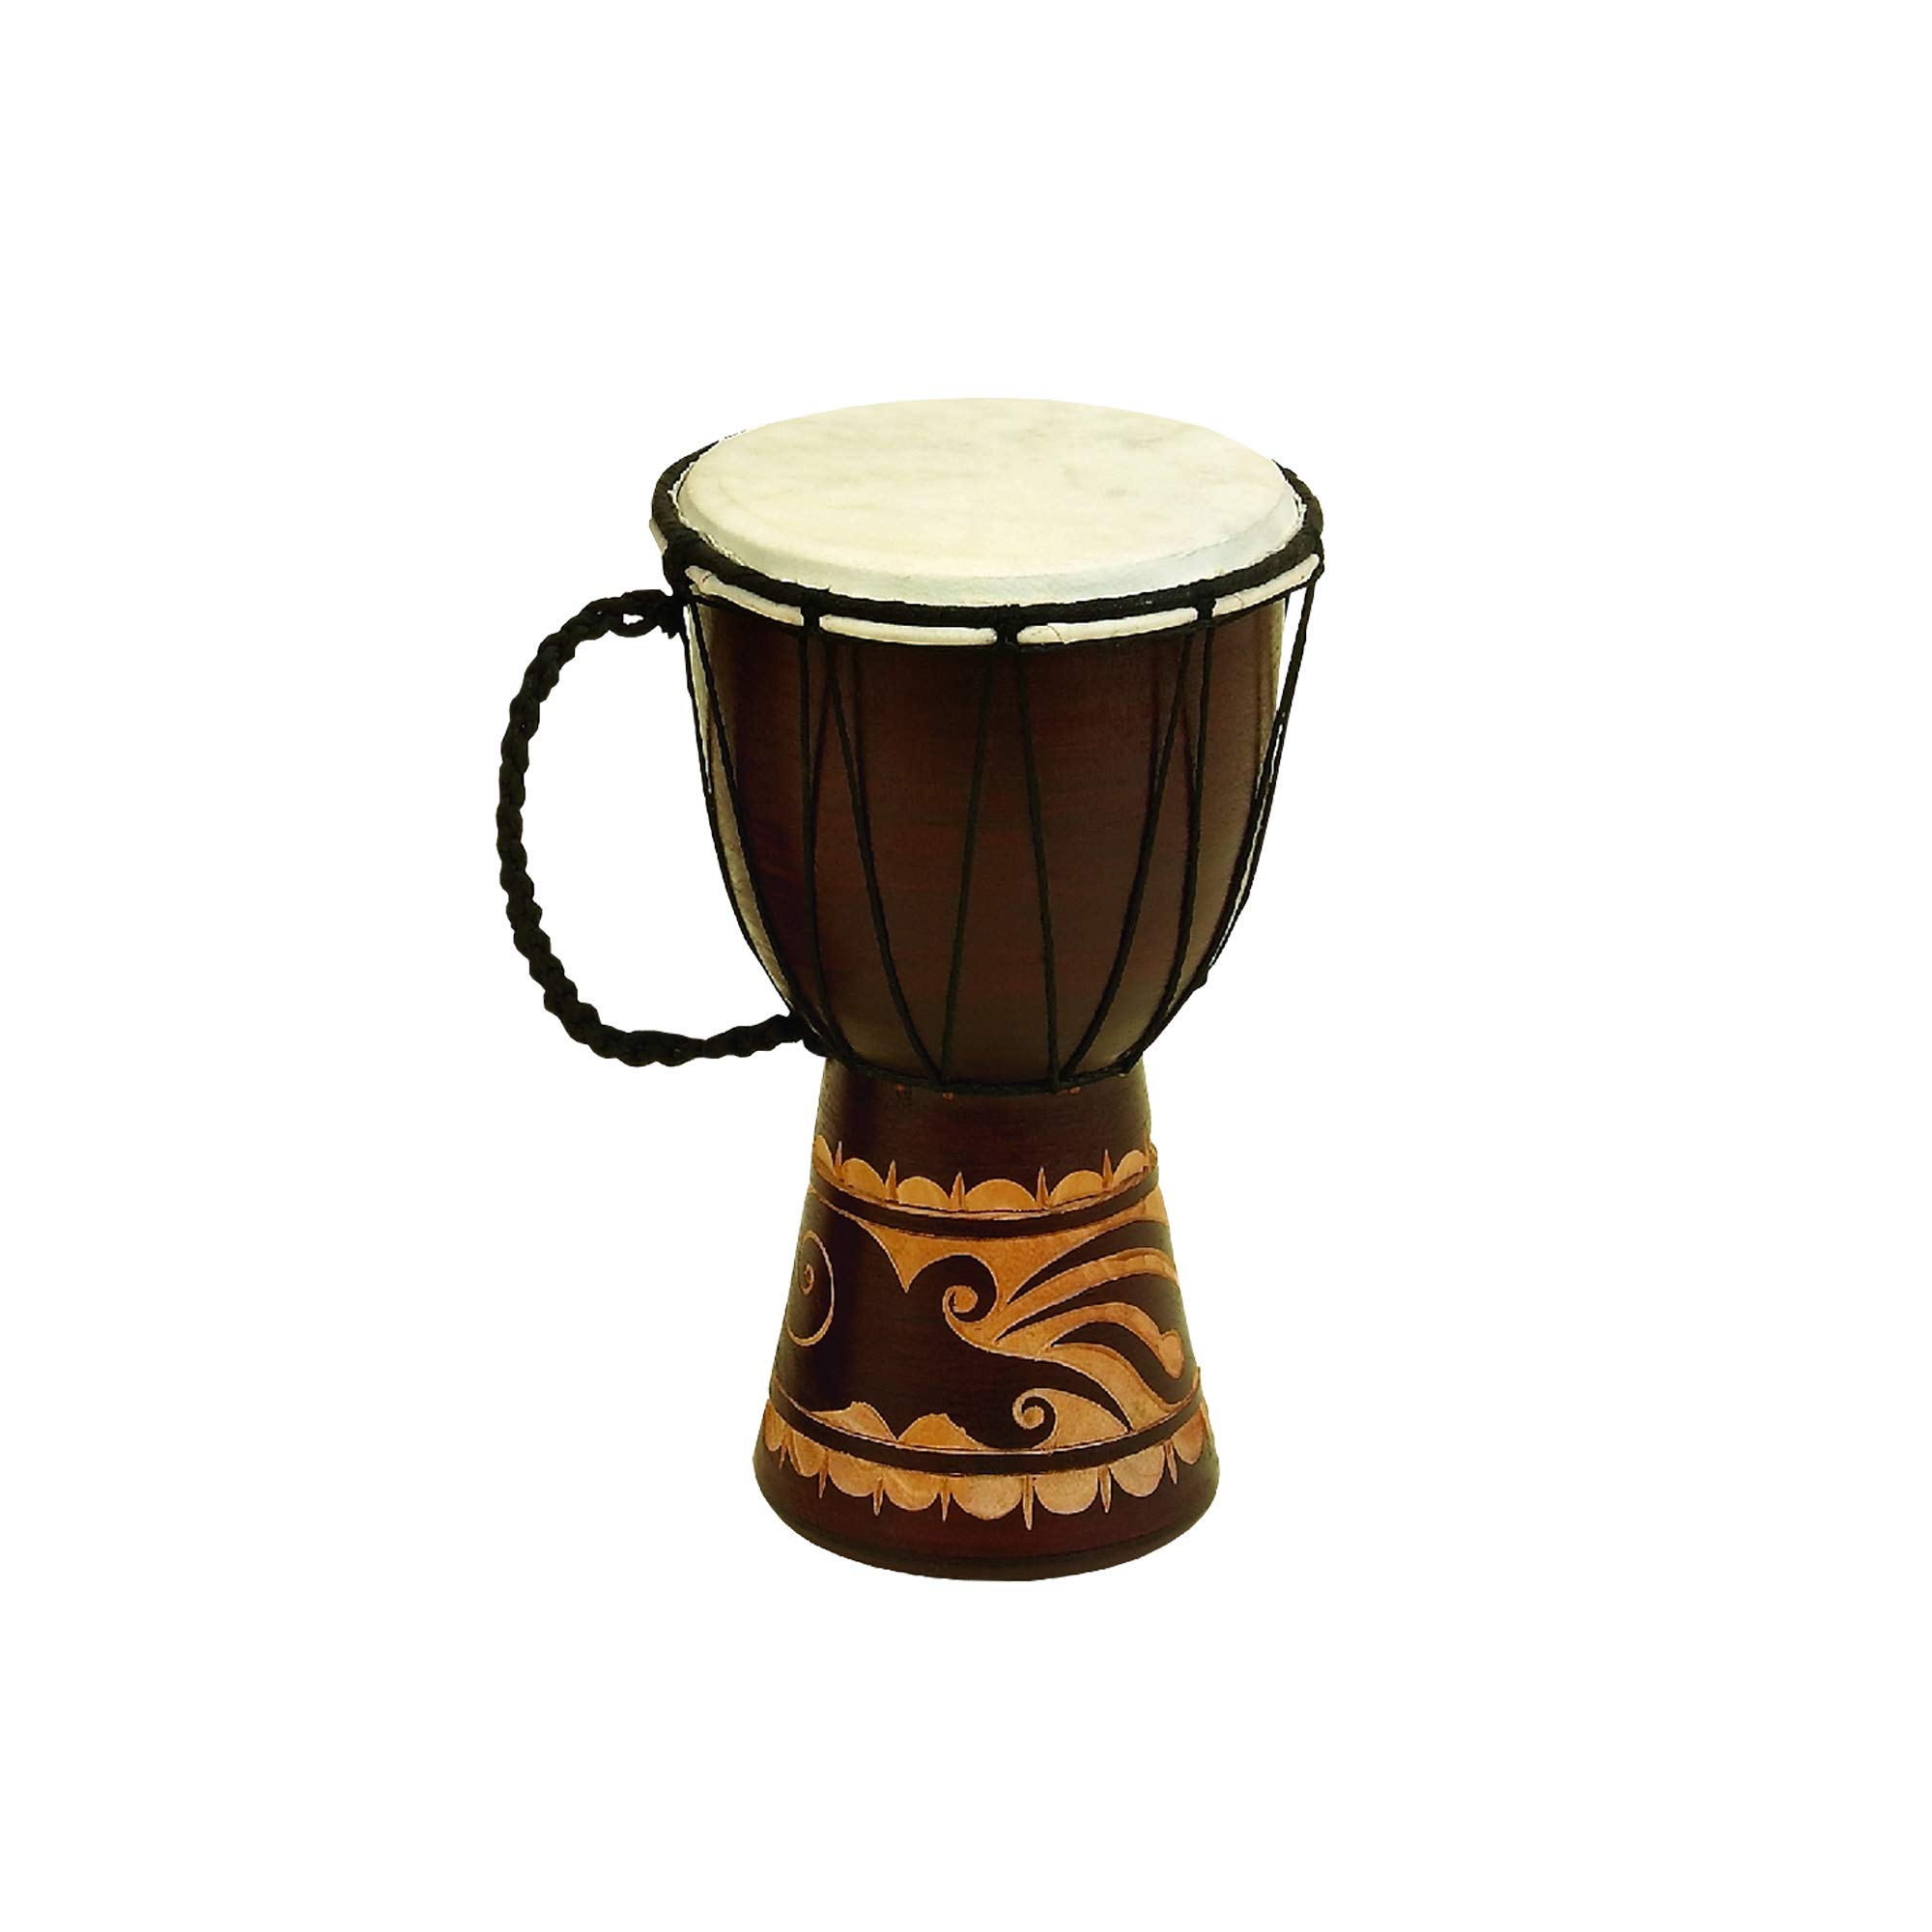 Benzara Decorative Wood and Faux Leather Djembe Drum with Side Handle, Small, Brown and Cream, by Benzara